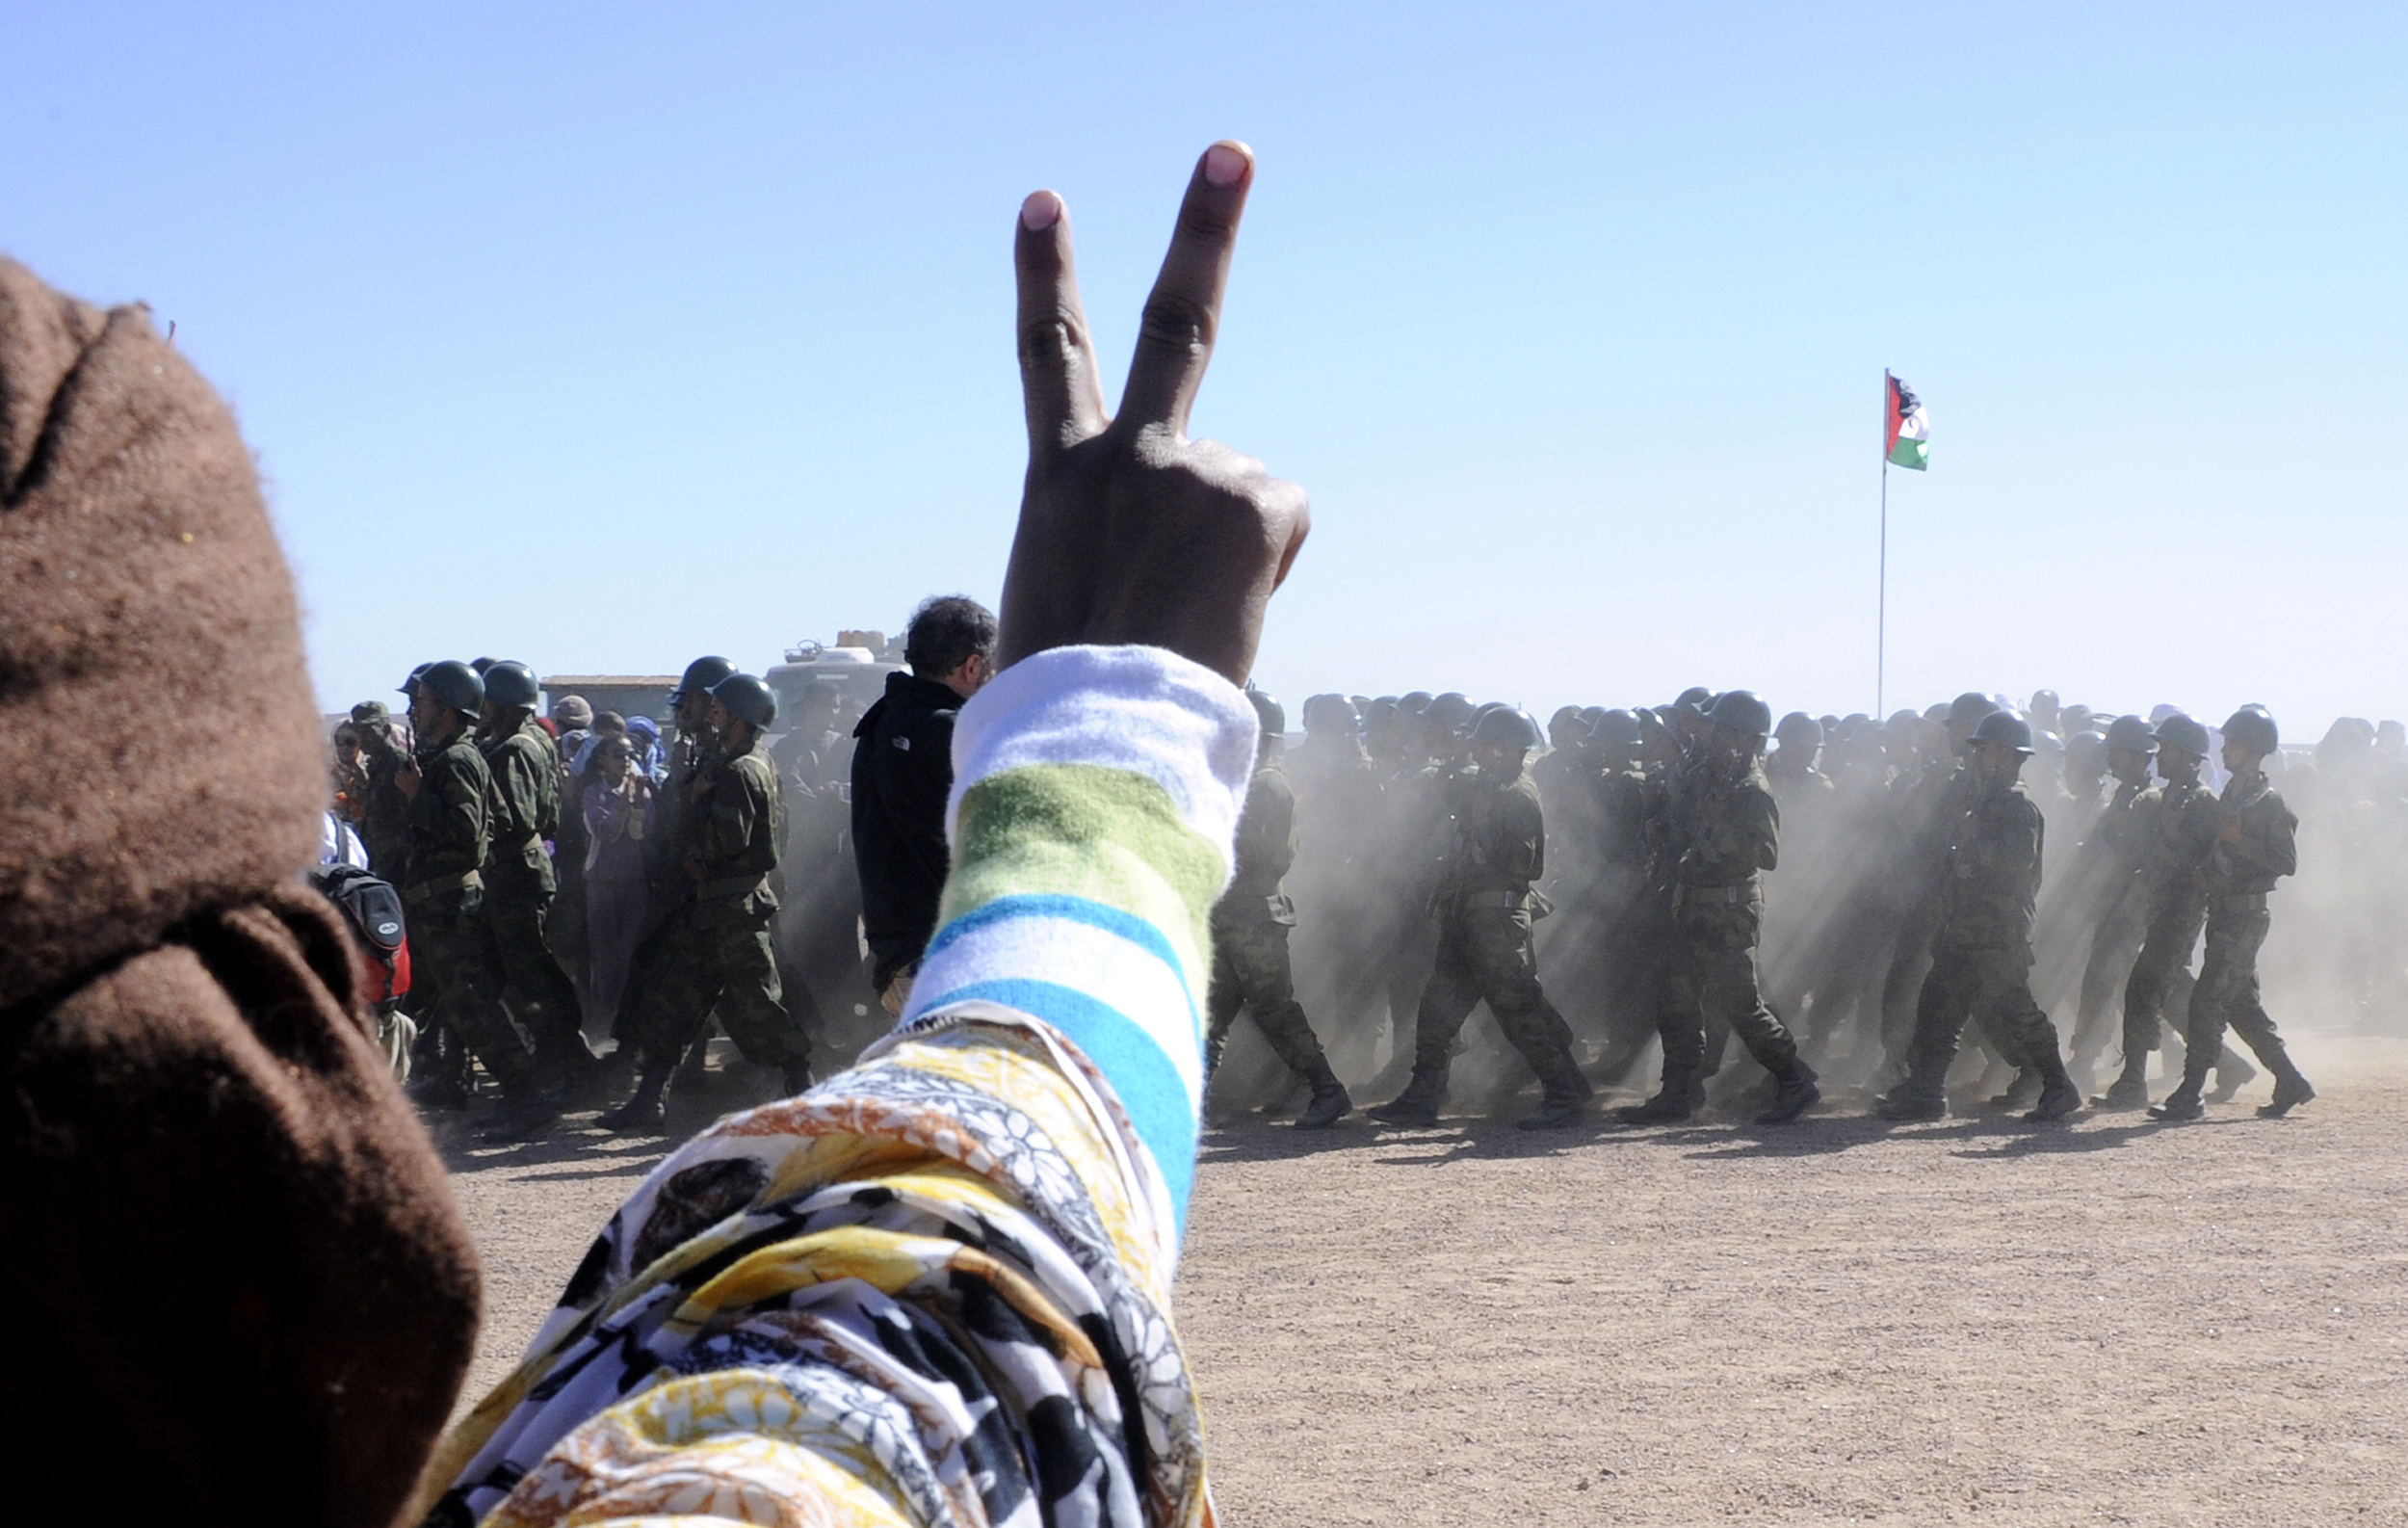 A man flashes a V sign as soldiers from the proindependence Polisario Front parade during a ceremony marking the 35th anniversary of the proclamation of independence of the Sahrawi Arab Democratic Republic in the Western Saharan village of Tifariti on Feb. 27, 2011